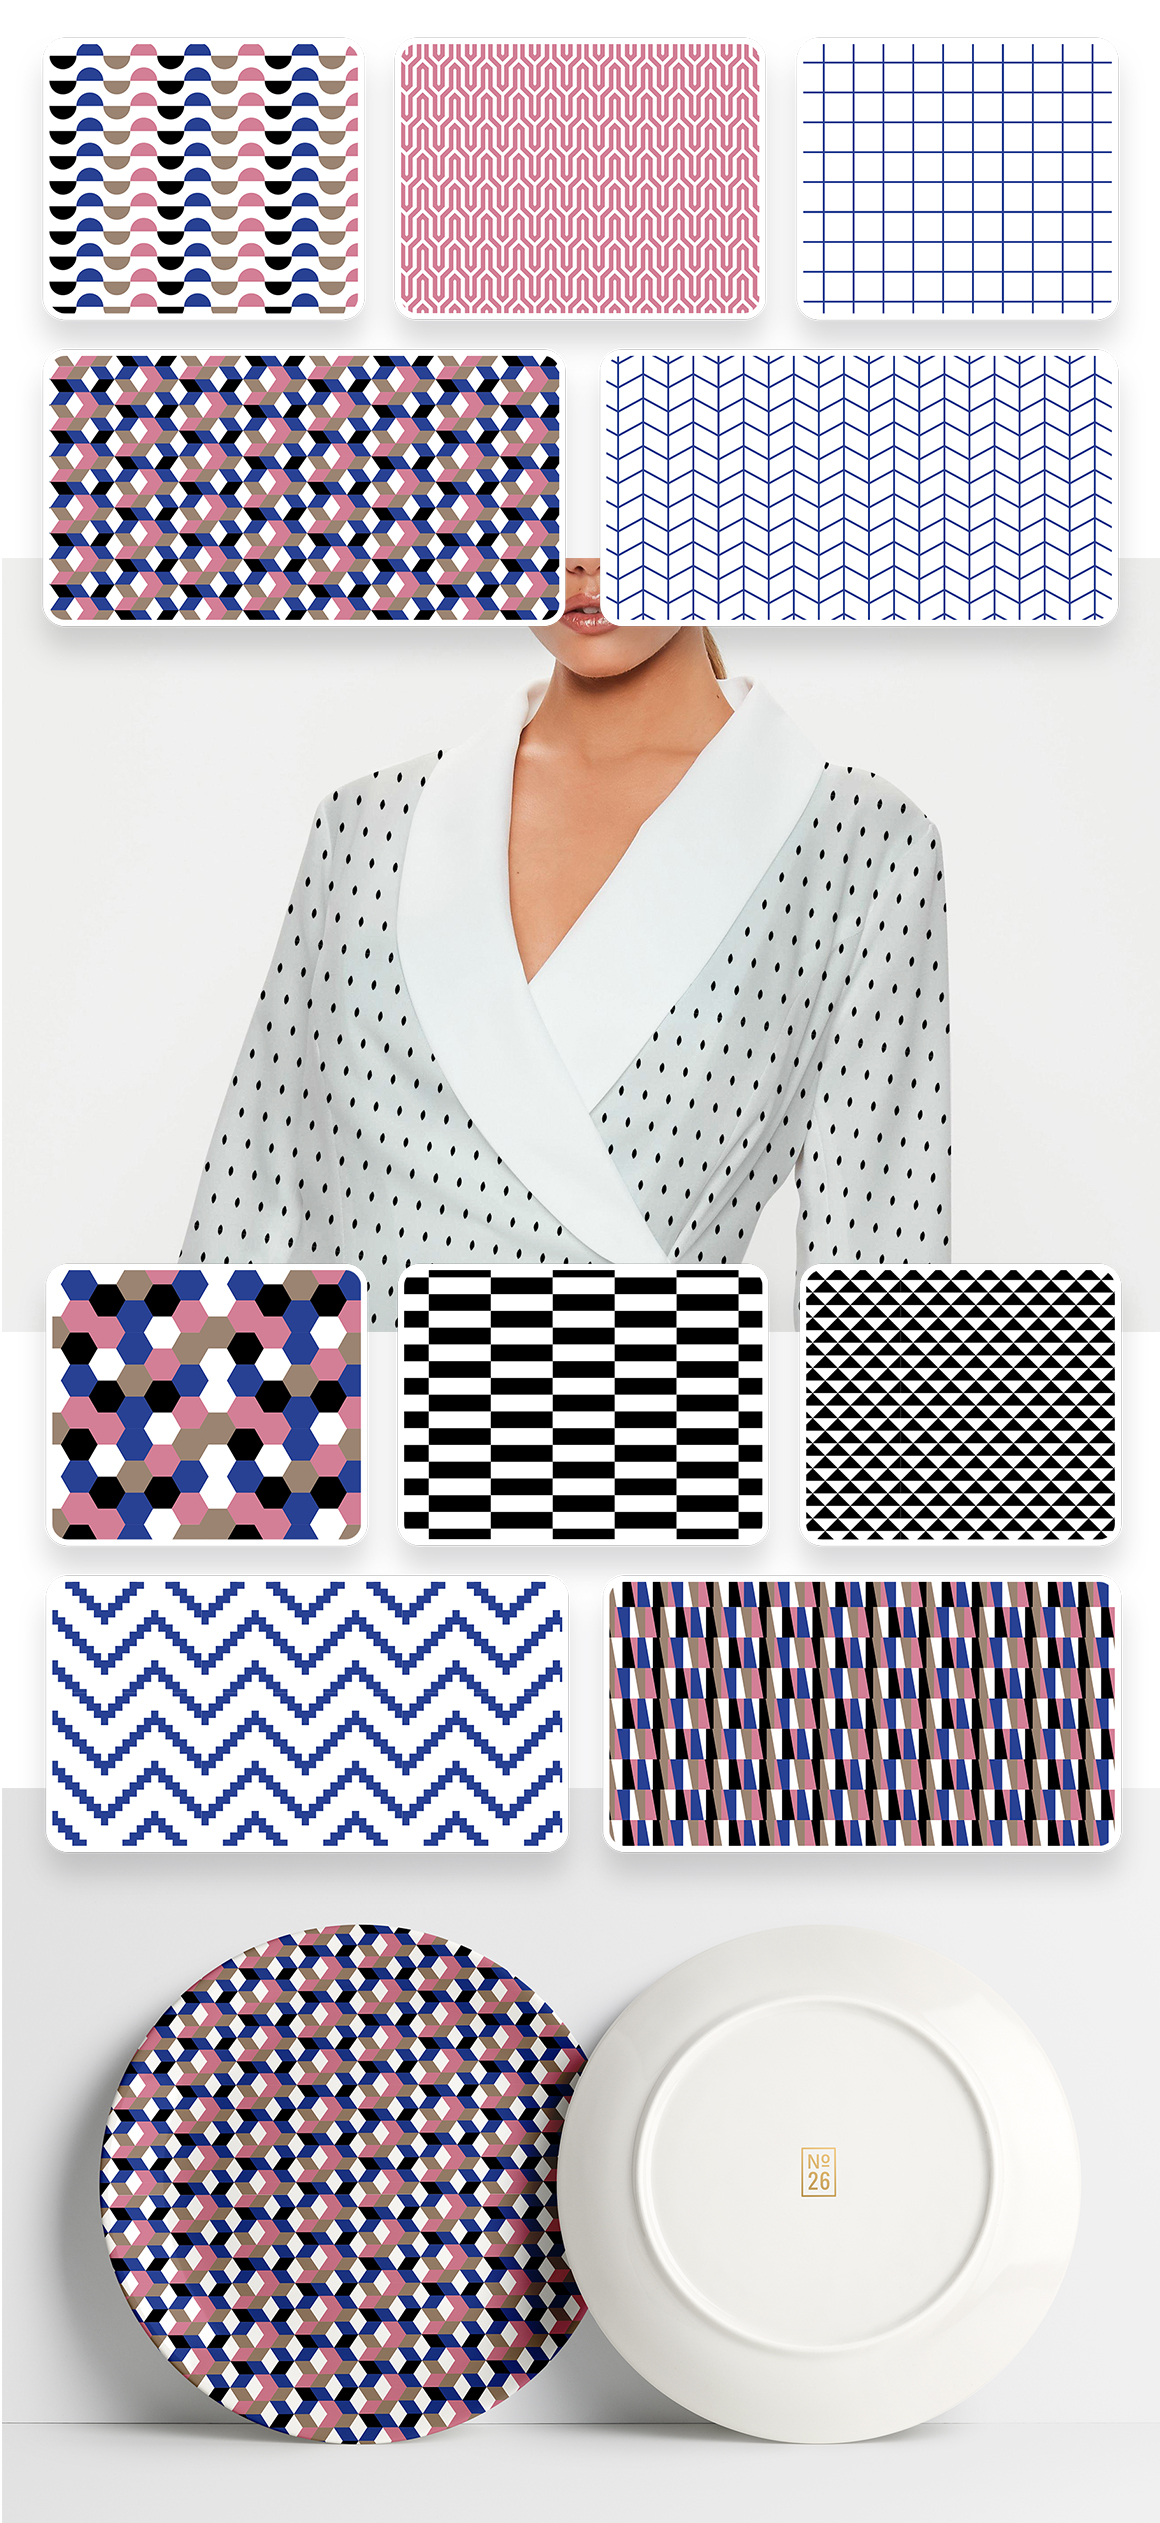 The Versatile Textures and Patterns Collection